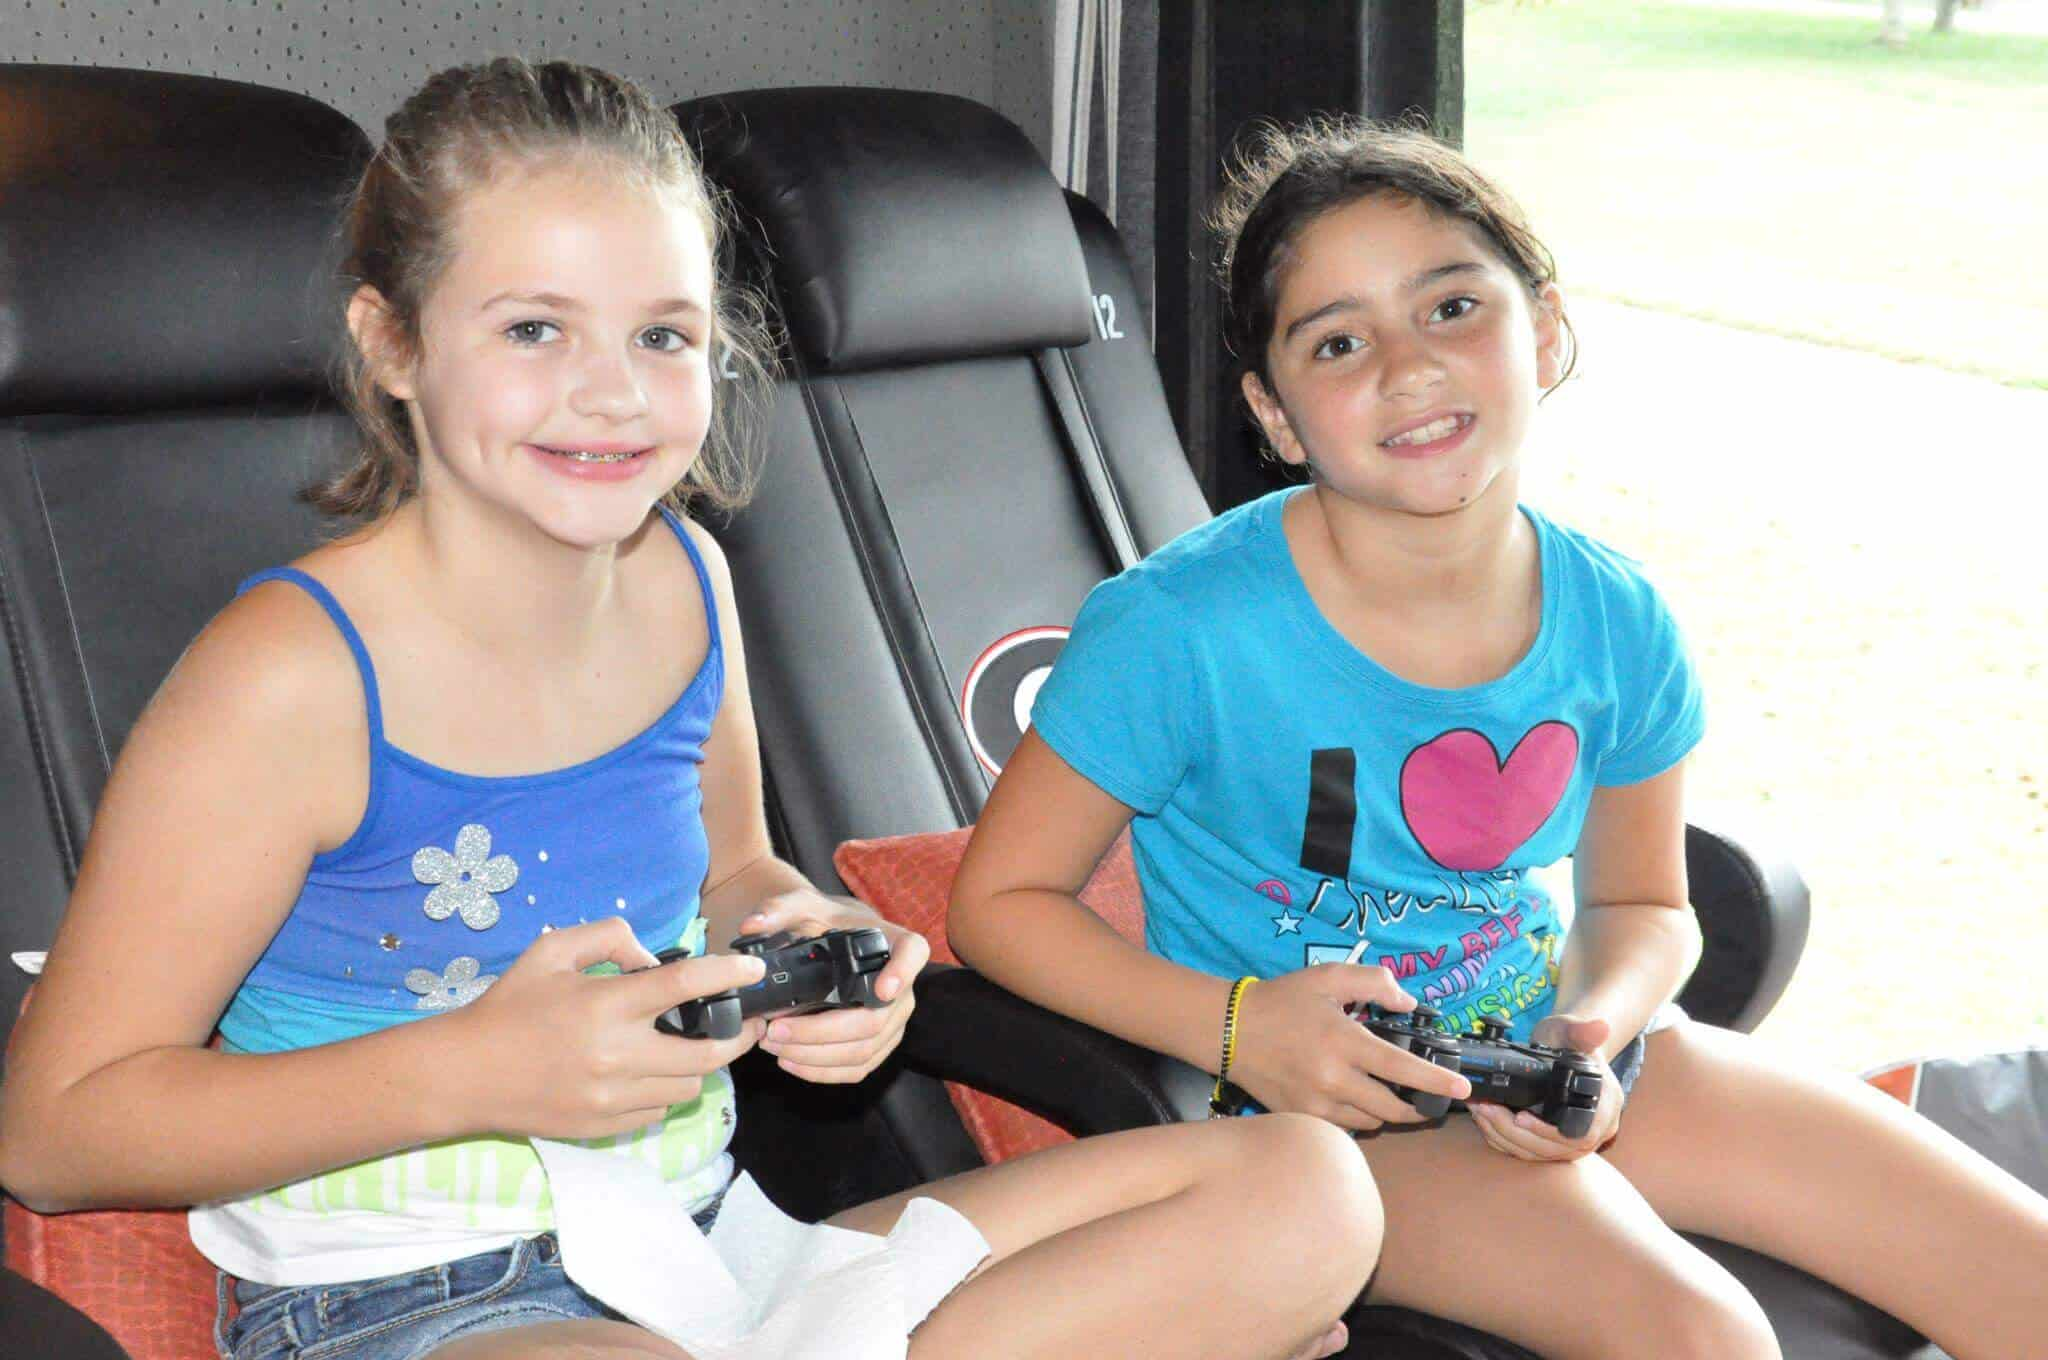 Game Truck Atlanta BY: Gamer vs Gamer Girls enjoying Playing video games